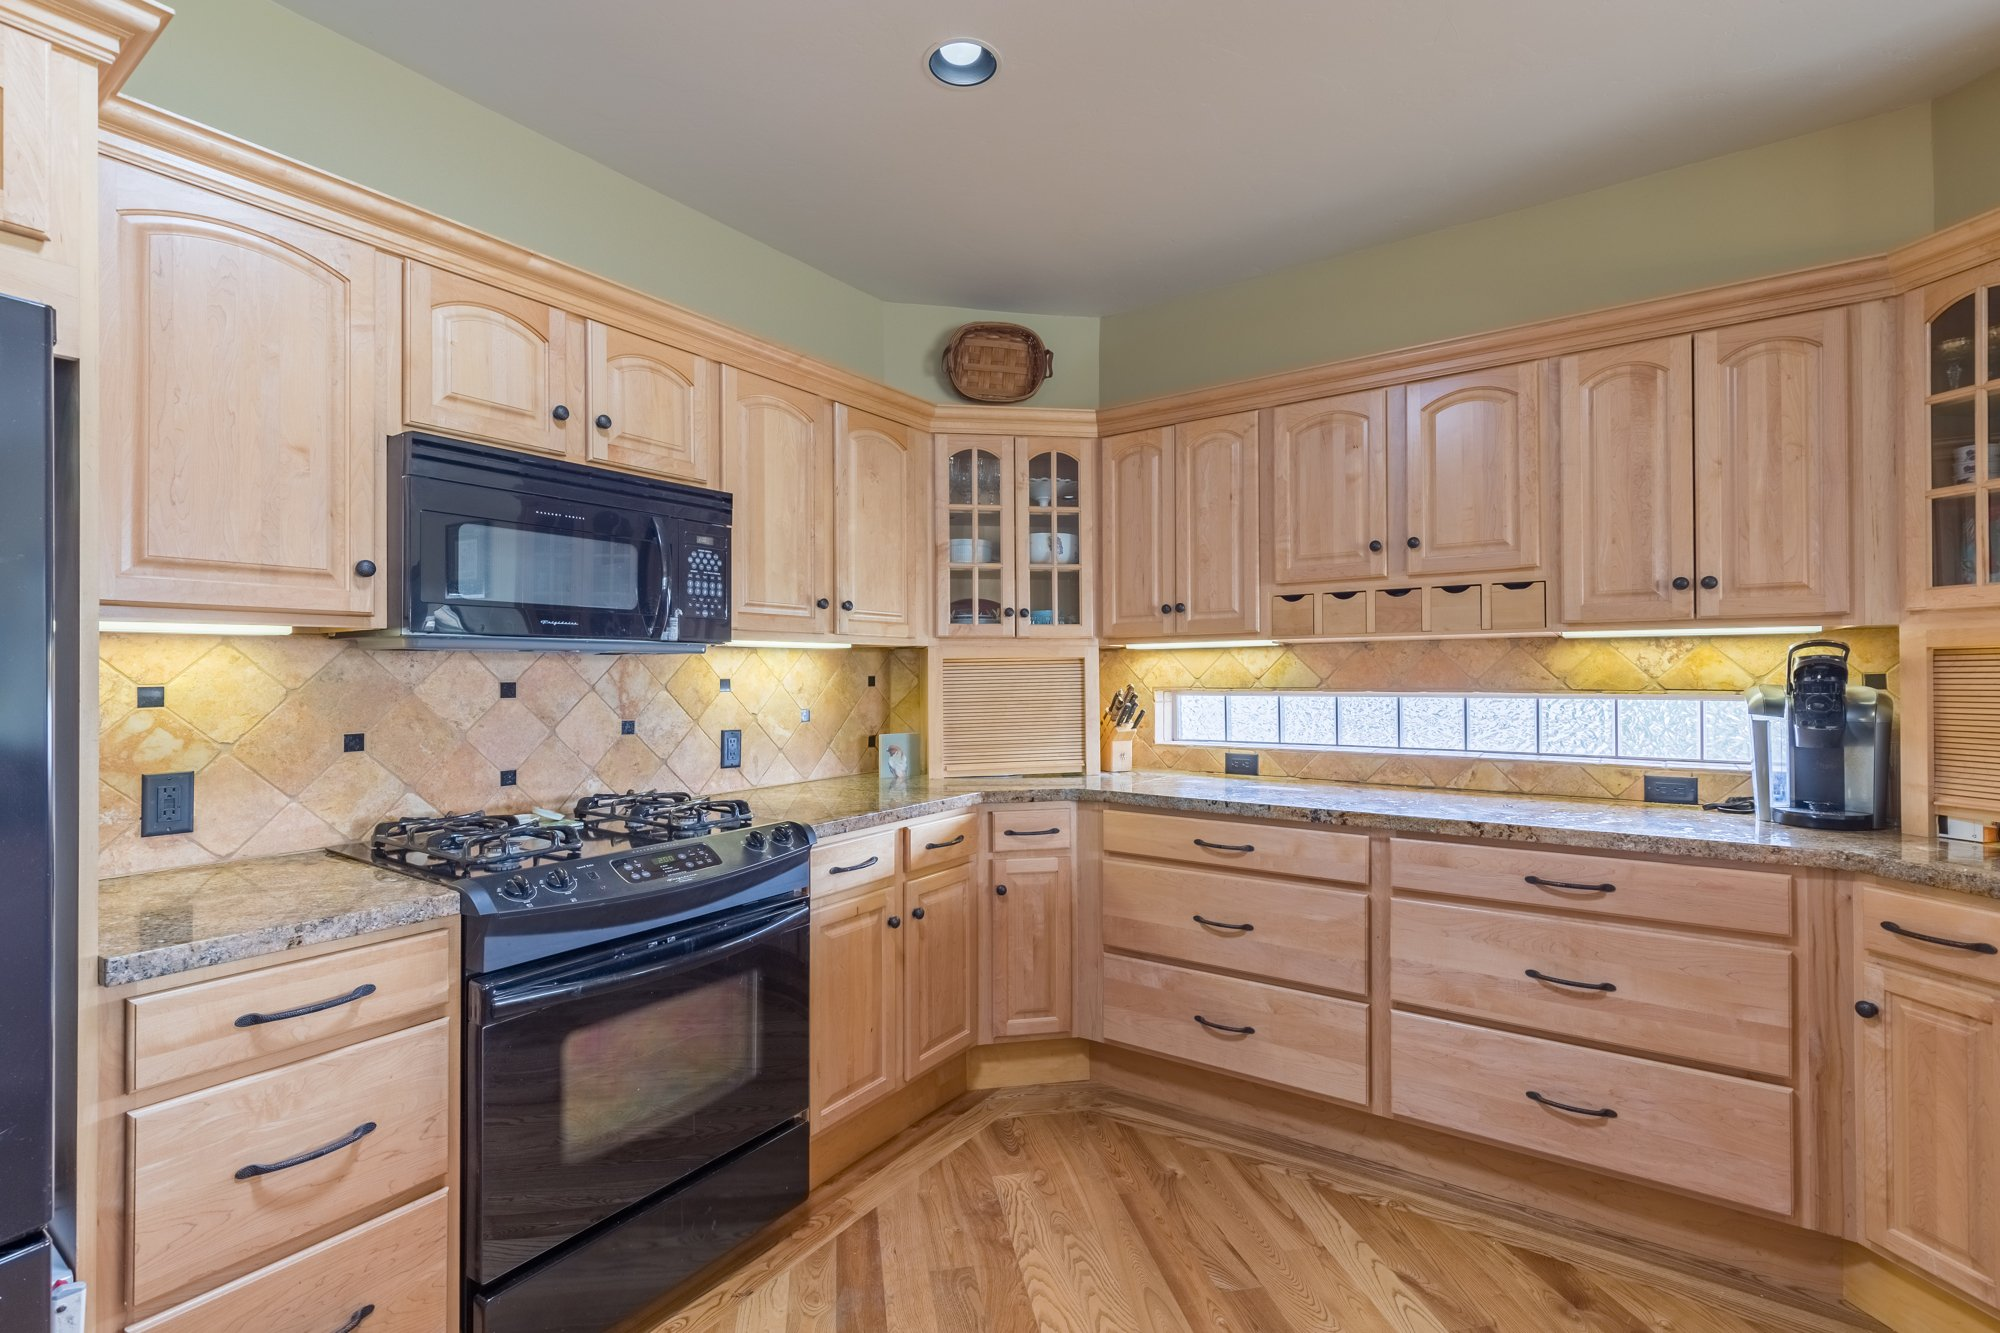 Kitchen with Appliances - 640 Badger Court Montrose, CO 81403 - Atha Team Real Estate Agents